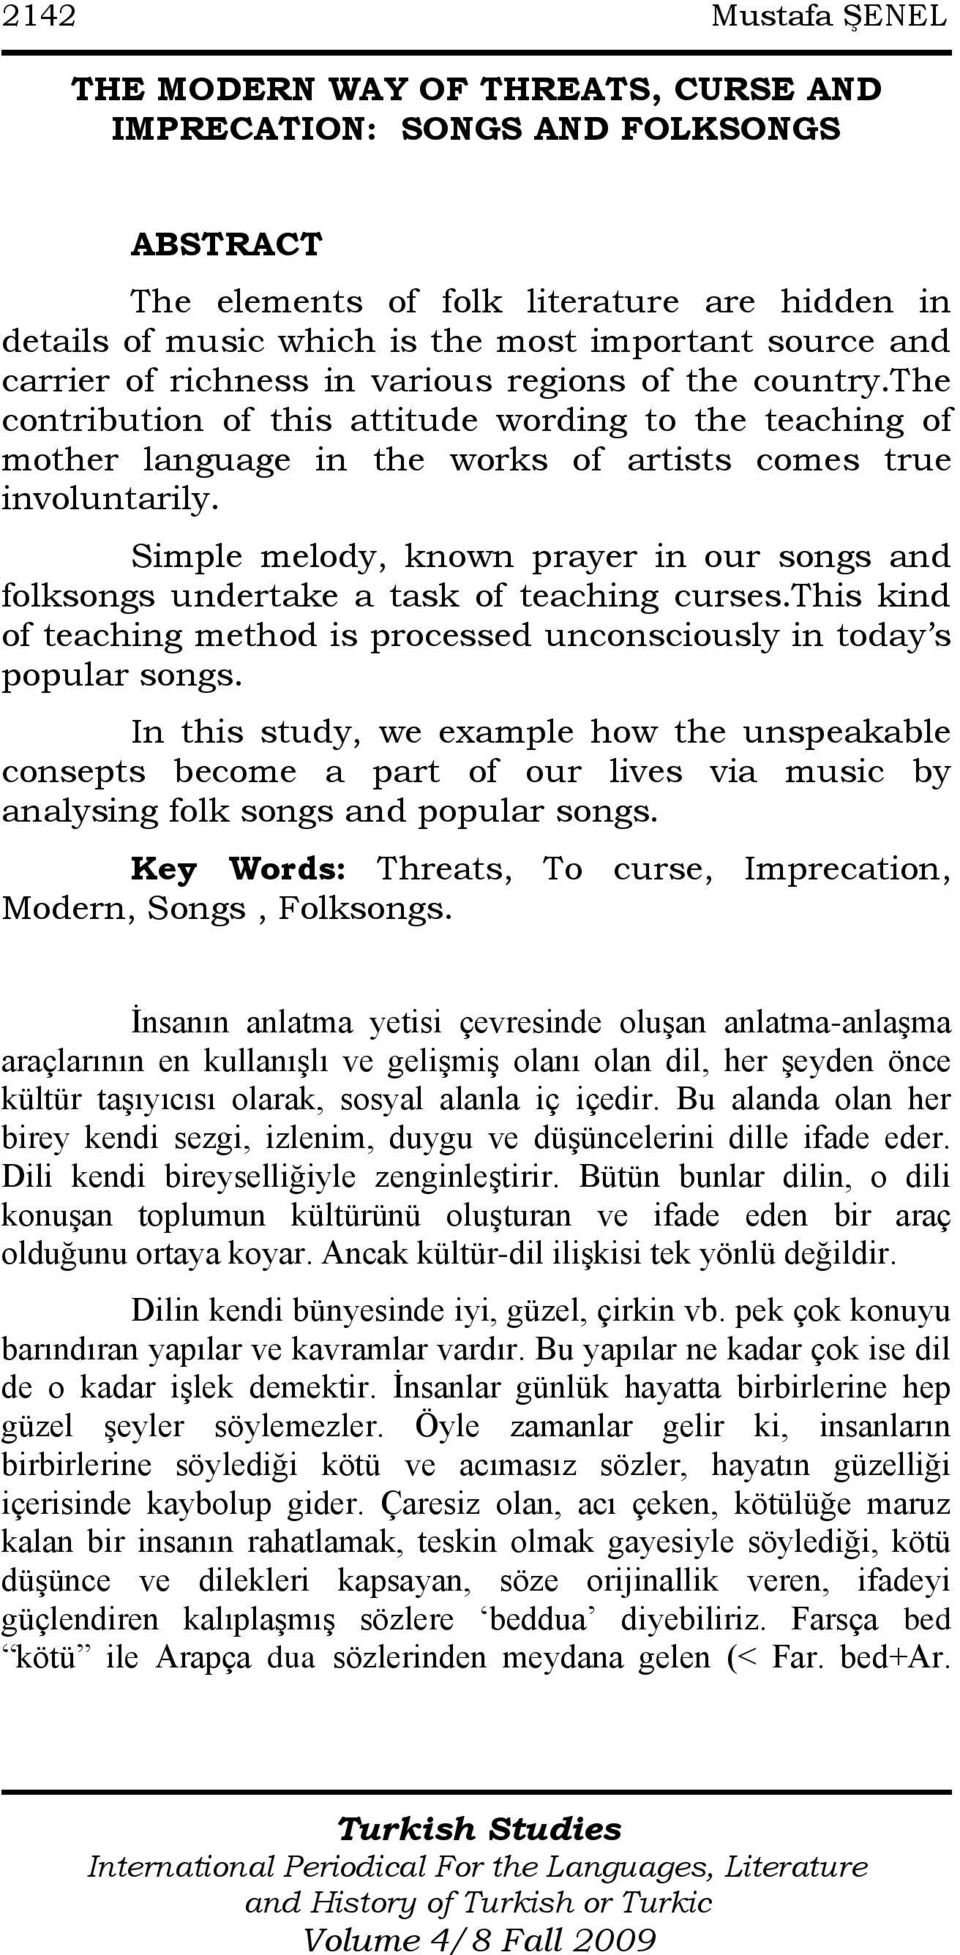 Simple melody, known prayer in our songs and folksongs undertake a task of teaching curses.this kind of teaching method is processed unconsciously in today s popular songs.